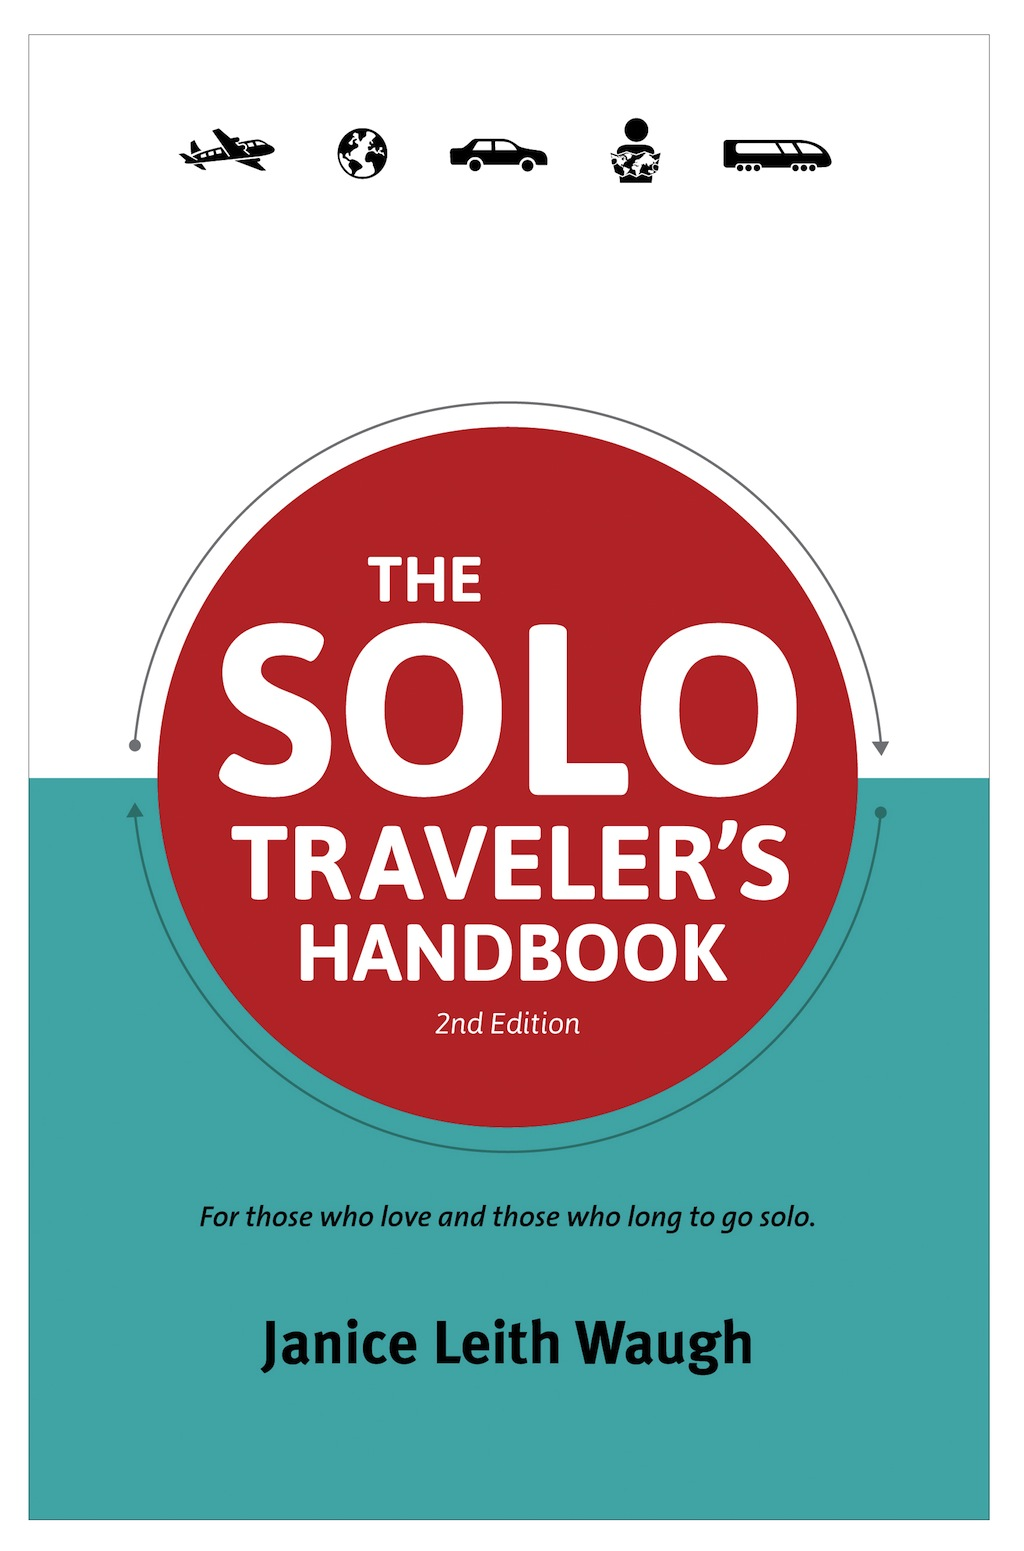 travelers series handbook - solo travel